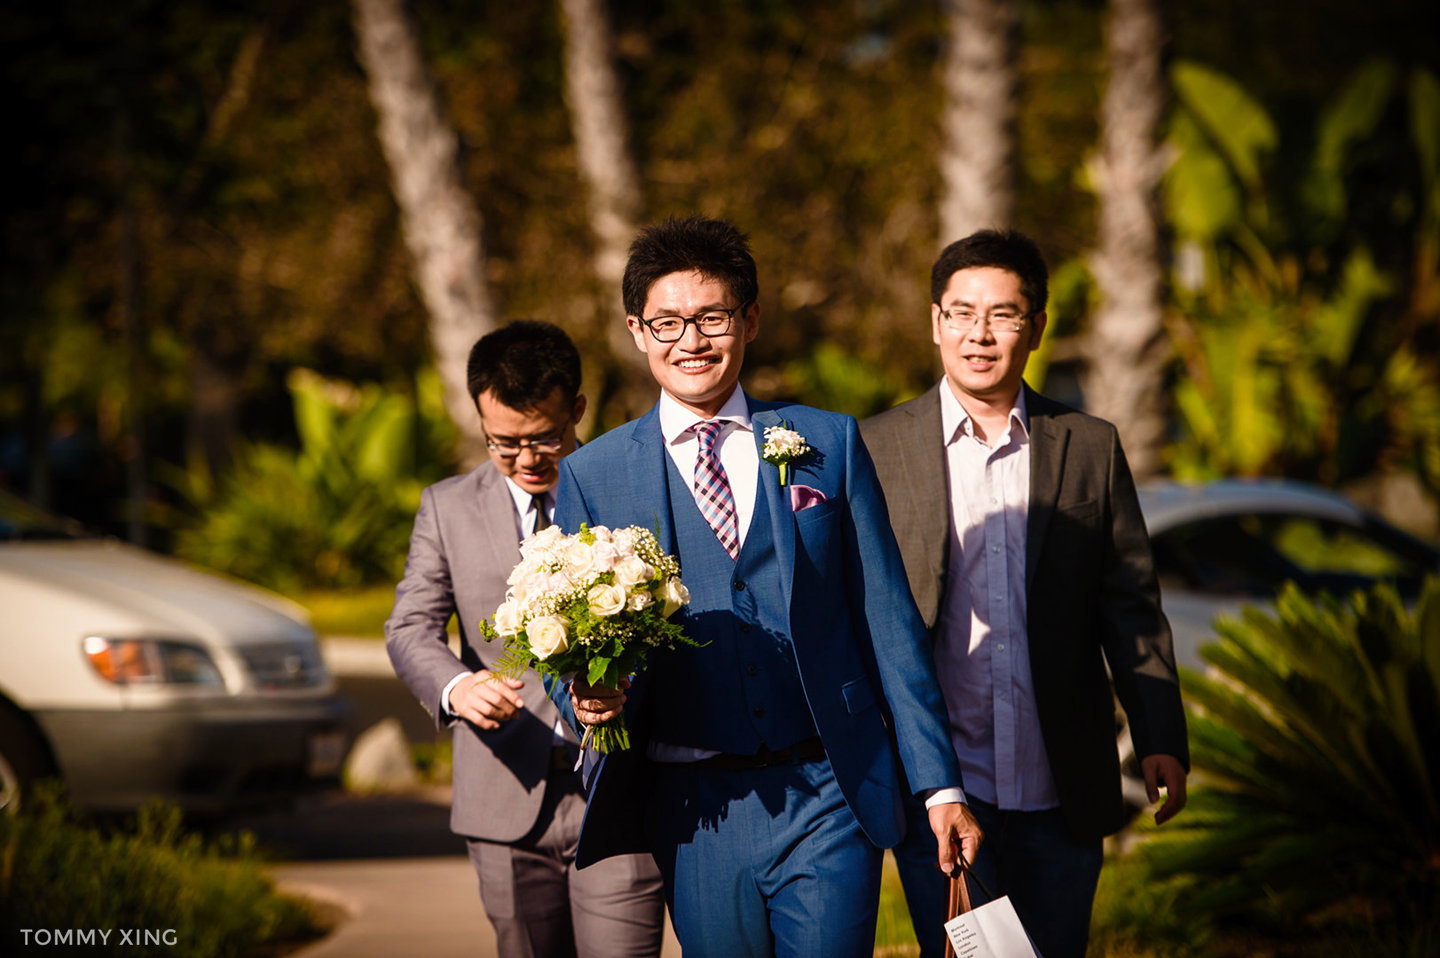 Paradise Point Resort Wedding Xiaolu & Bin San Diego 圣地亚哥婚礼摄影跟拍 Tommy Xing Photography 洛杉矶婚礼婚纱照摄影师 080.jpg